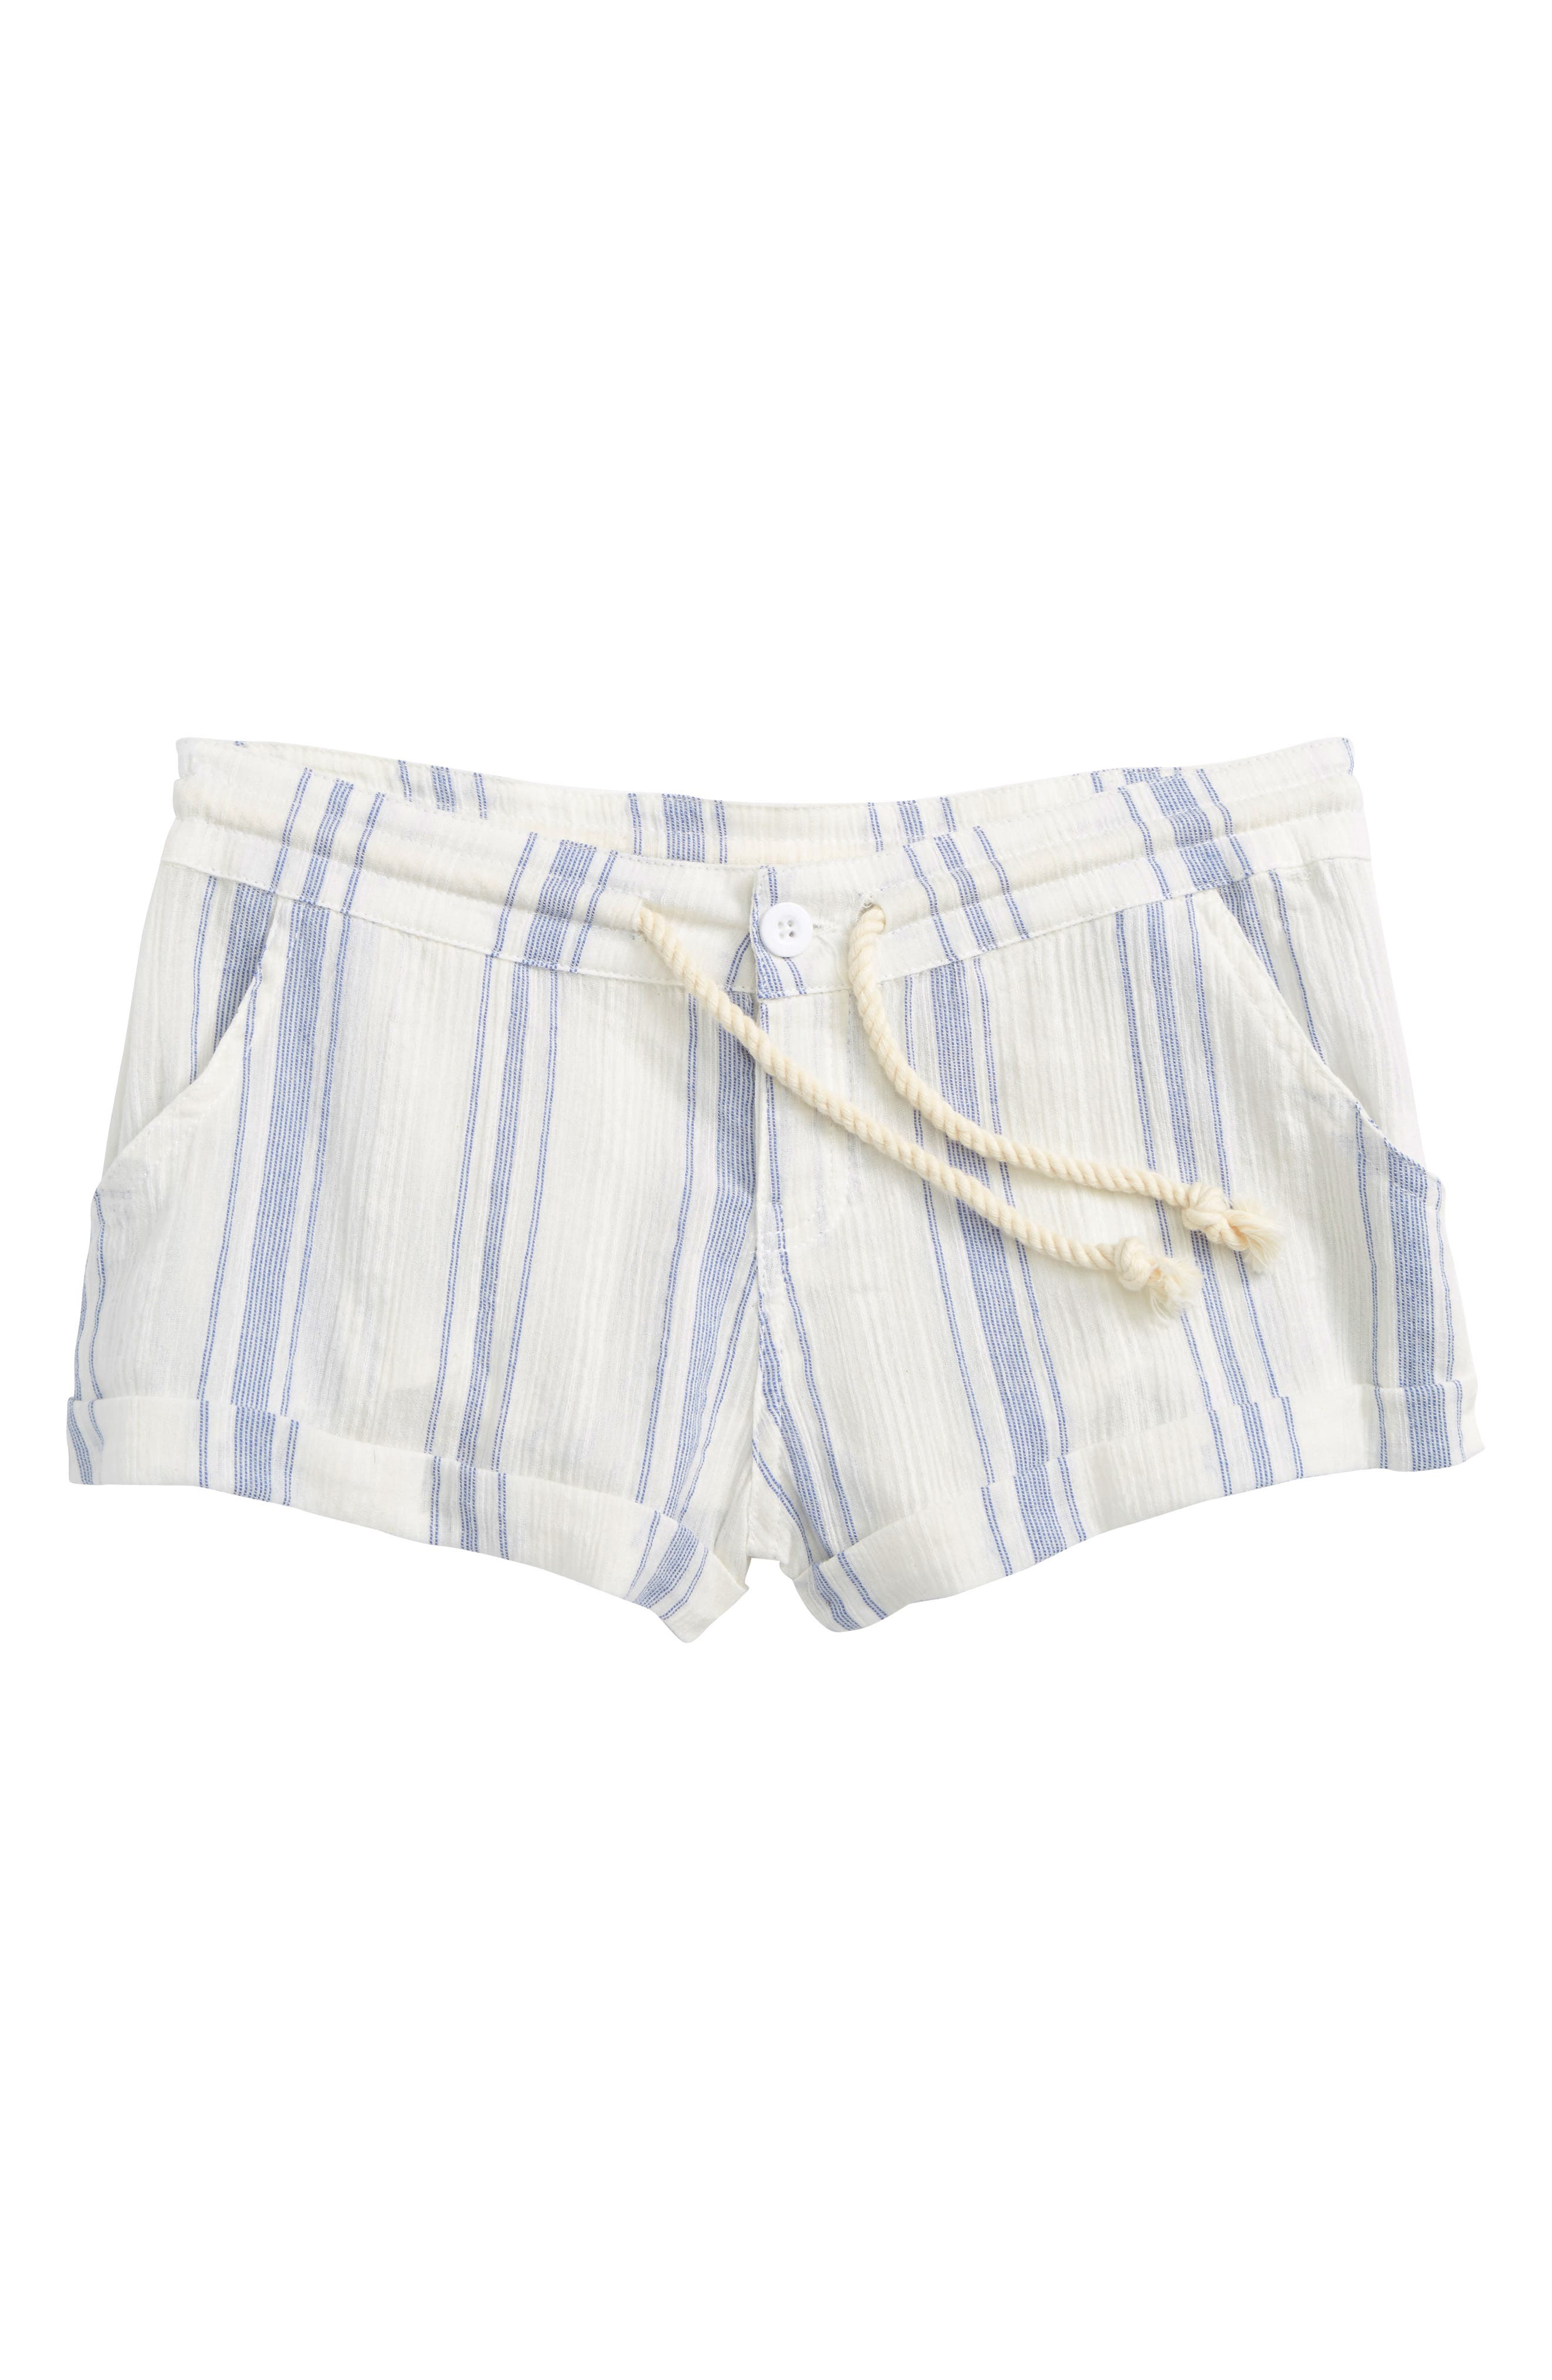 Krissy Stripe Cotton Shorts,                         Main,                         color, White